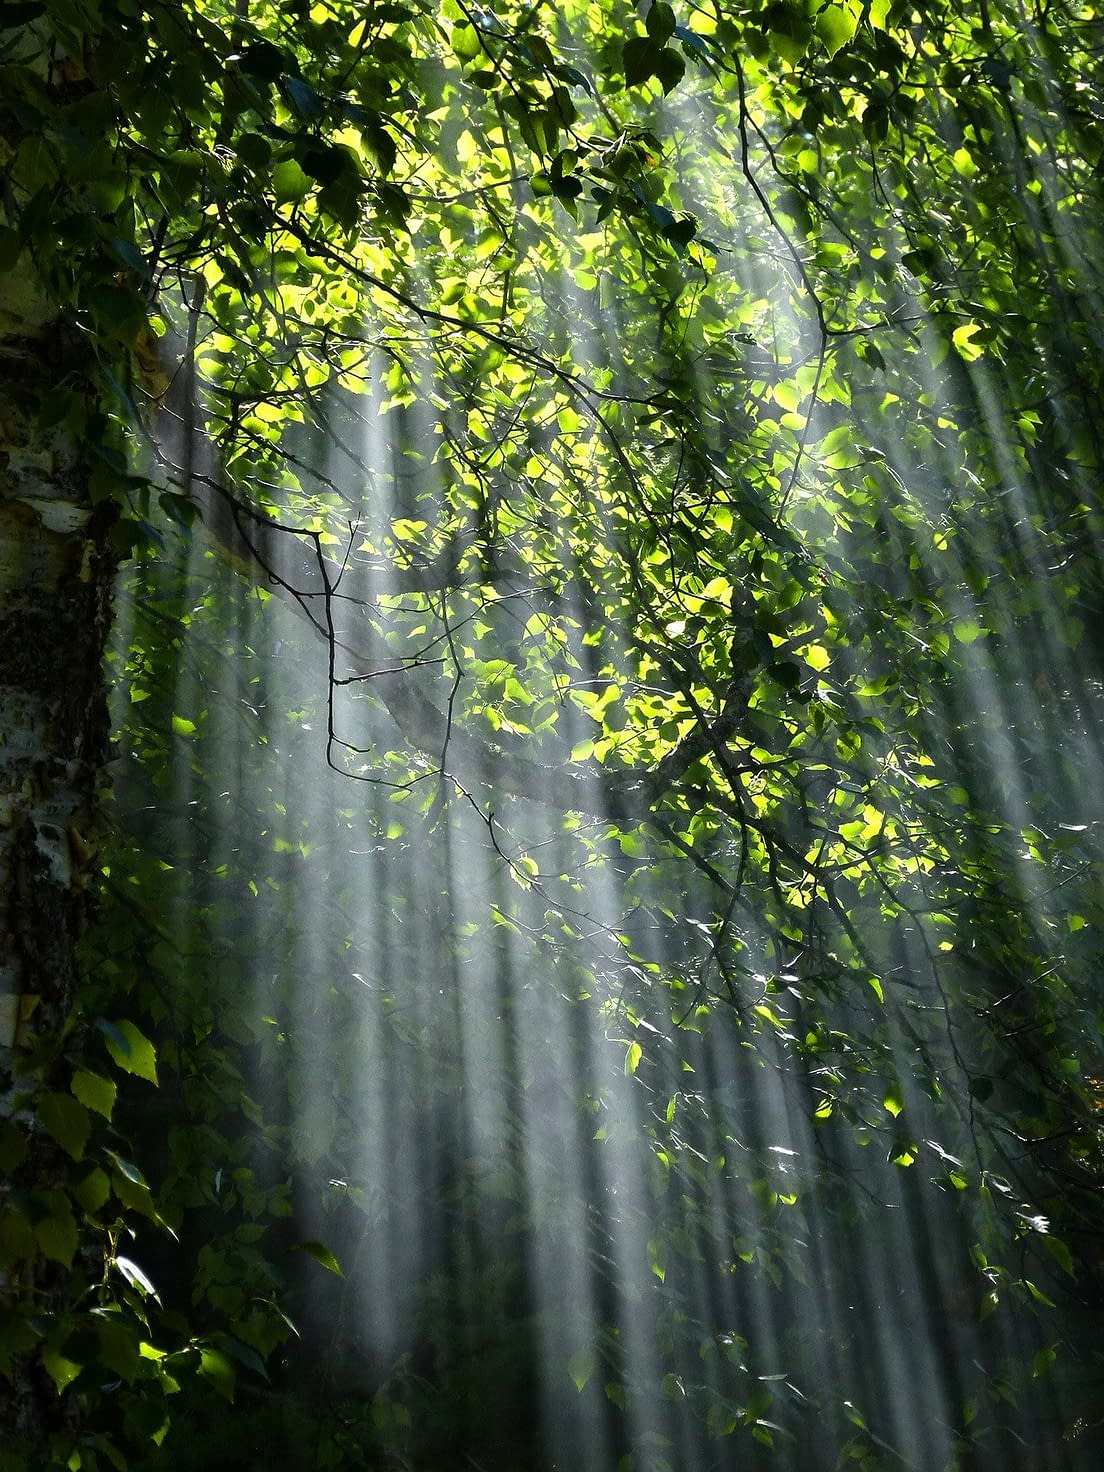 Light coming through leaves